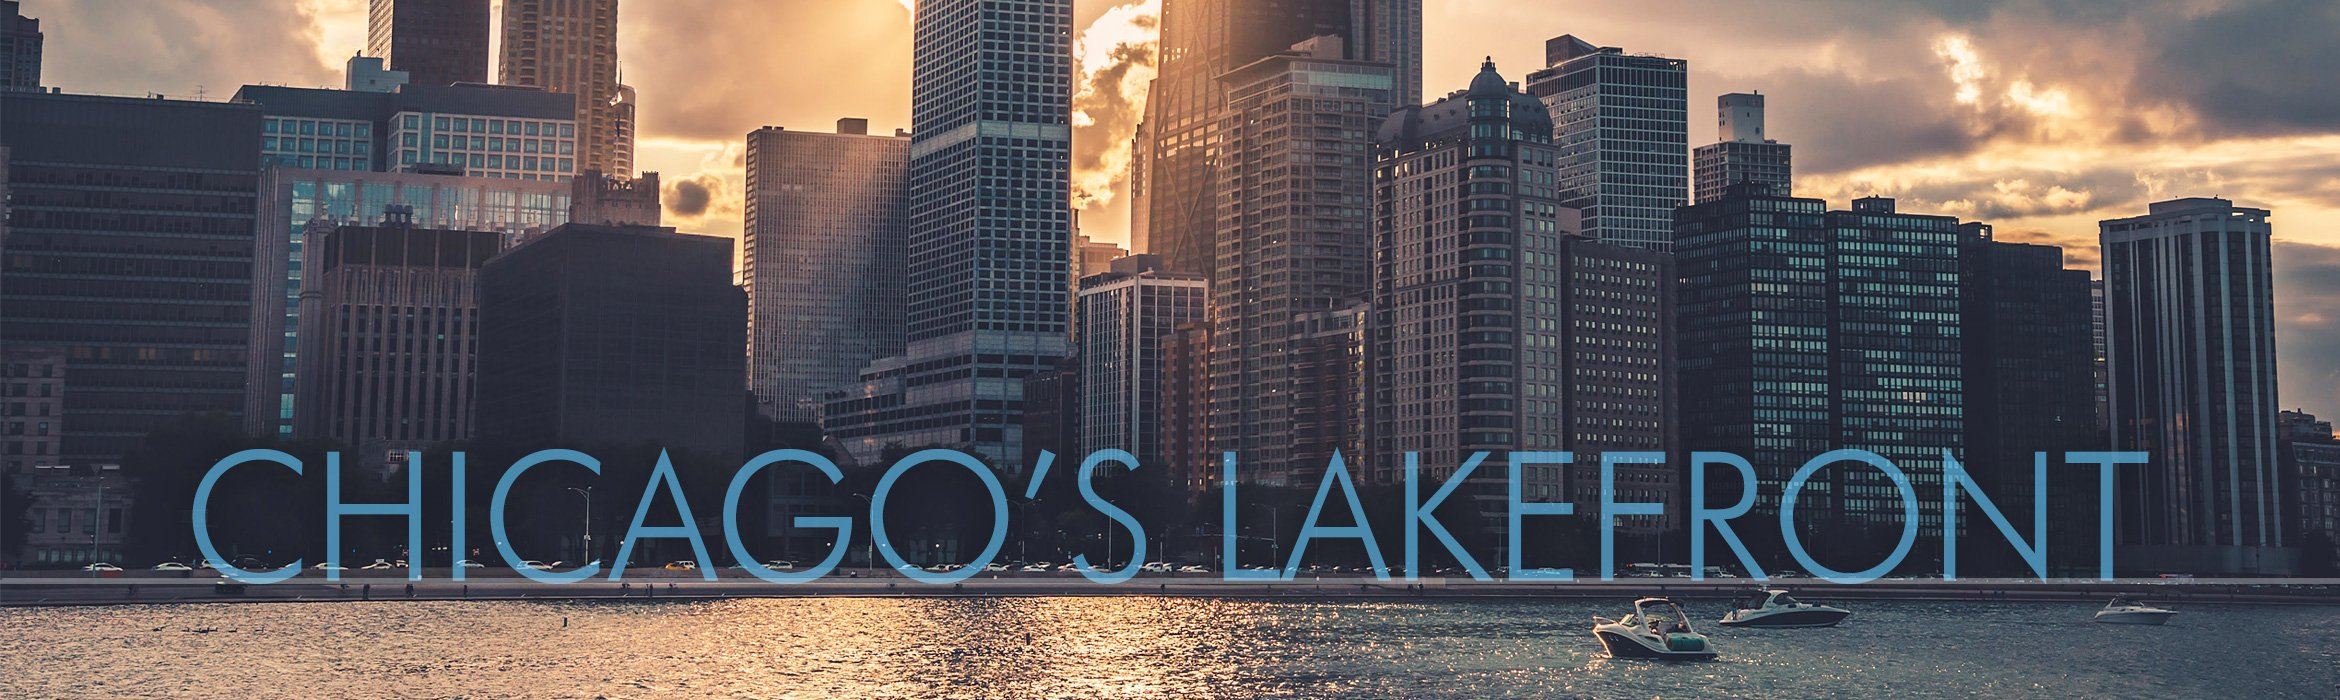 Geoffrey Baer Tours: Chicago's Lakefront - Map   WTTW Chicago on